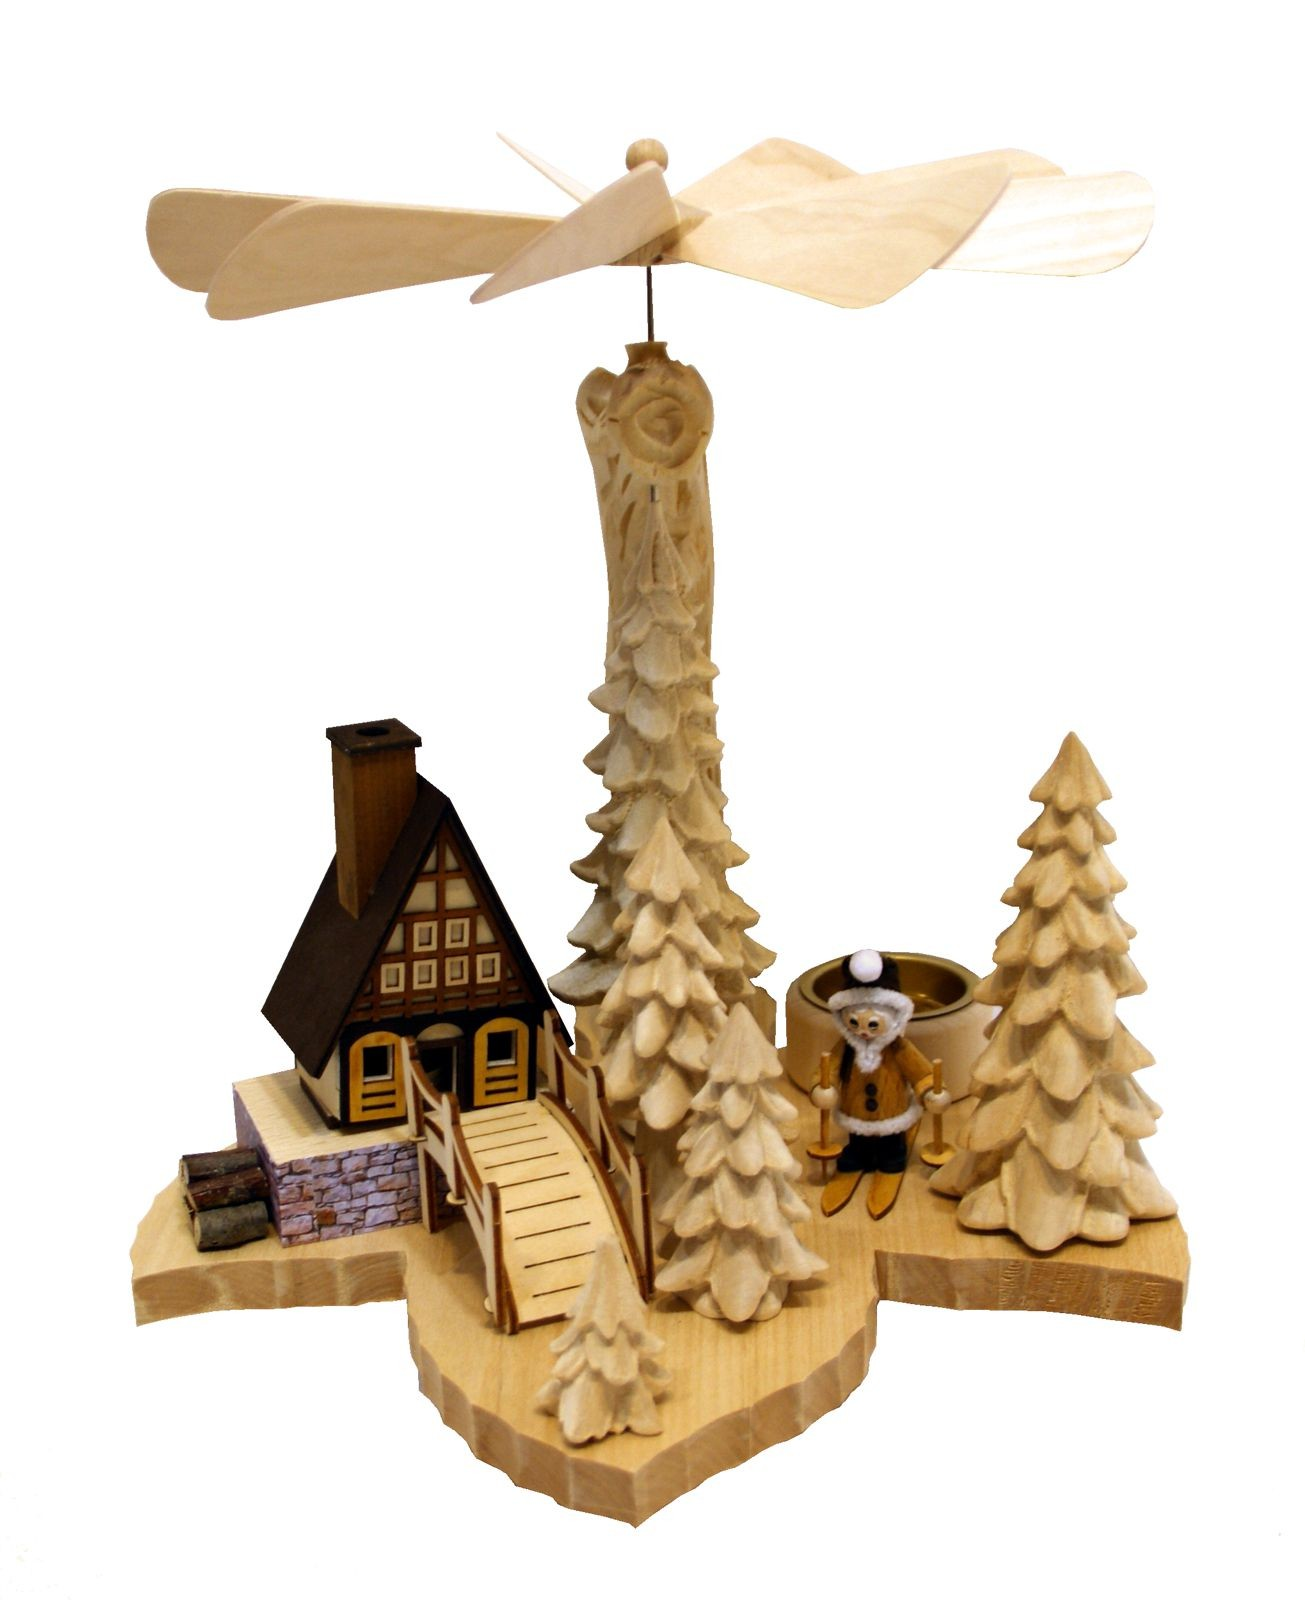 solid wood pyramid Santa Claus